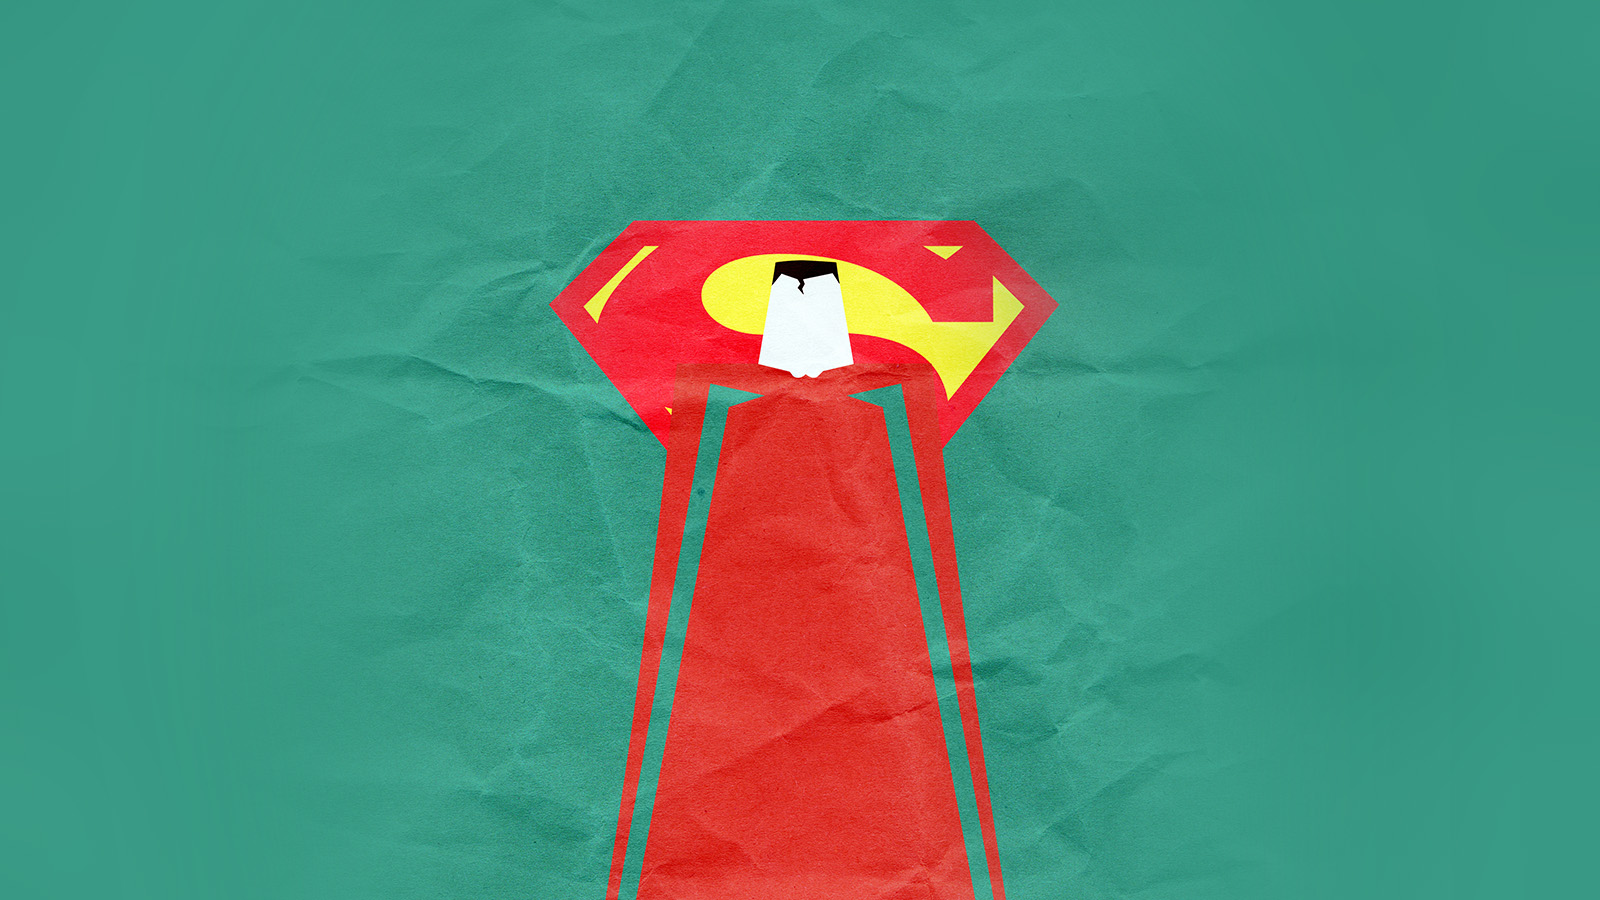 superman essays A little bit of a foreword: i wrote this following essay for a class assignment last semester in english 1010 it was a compare and contrast paper, and being the nerd that i am, i decided to compare superman and batman.